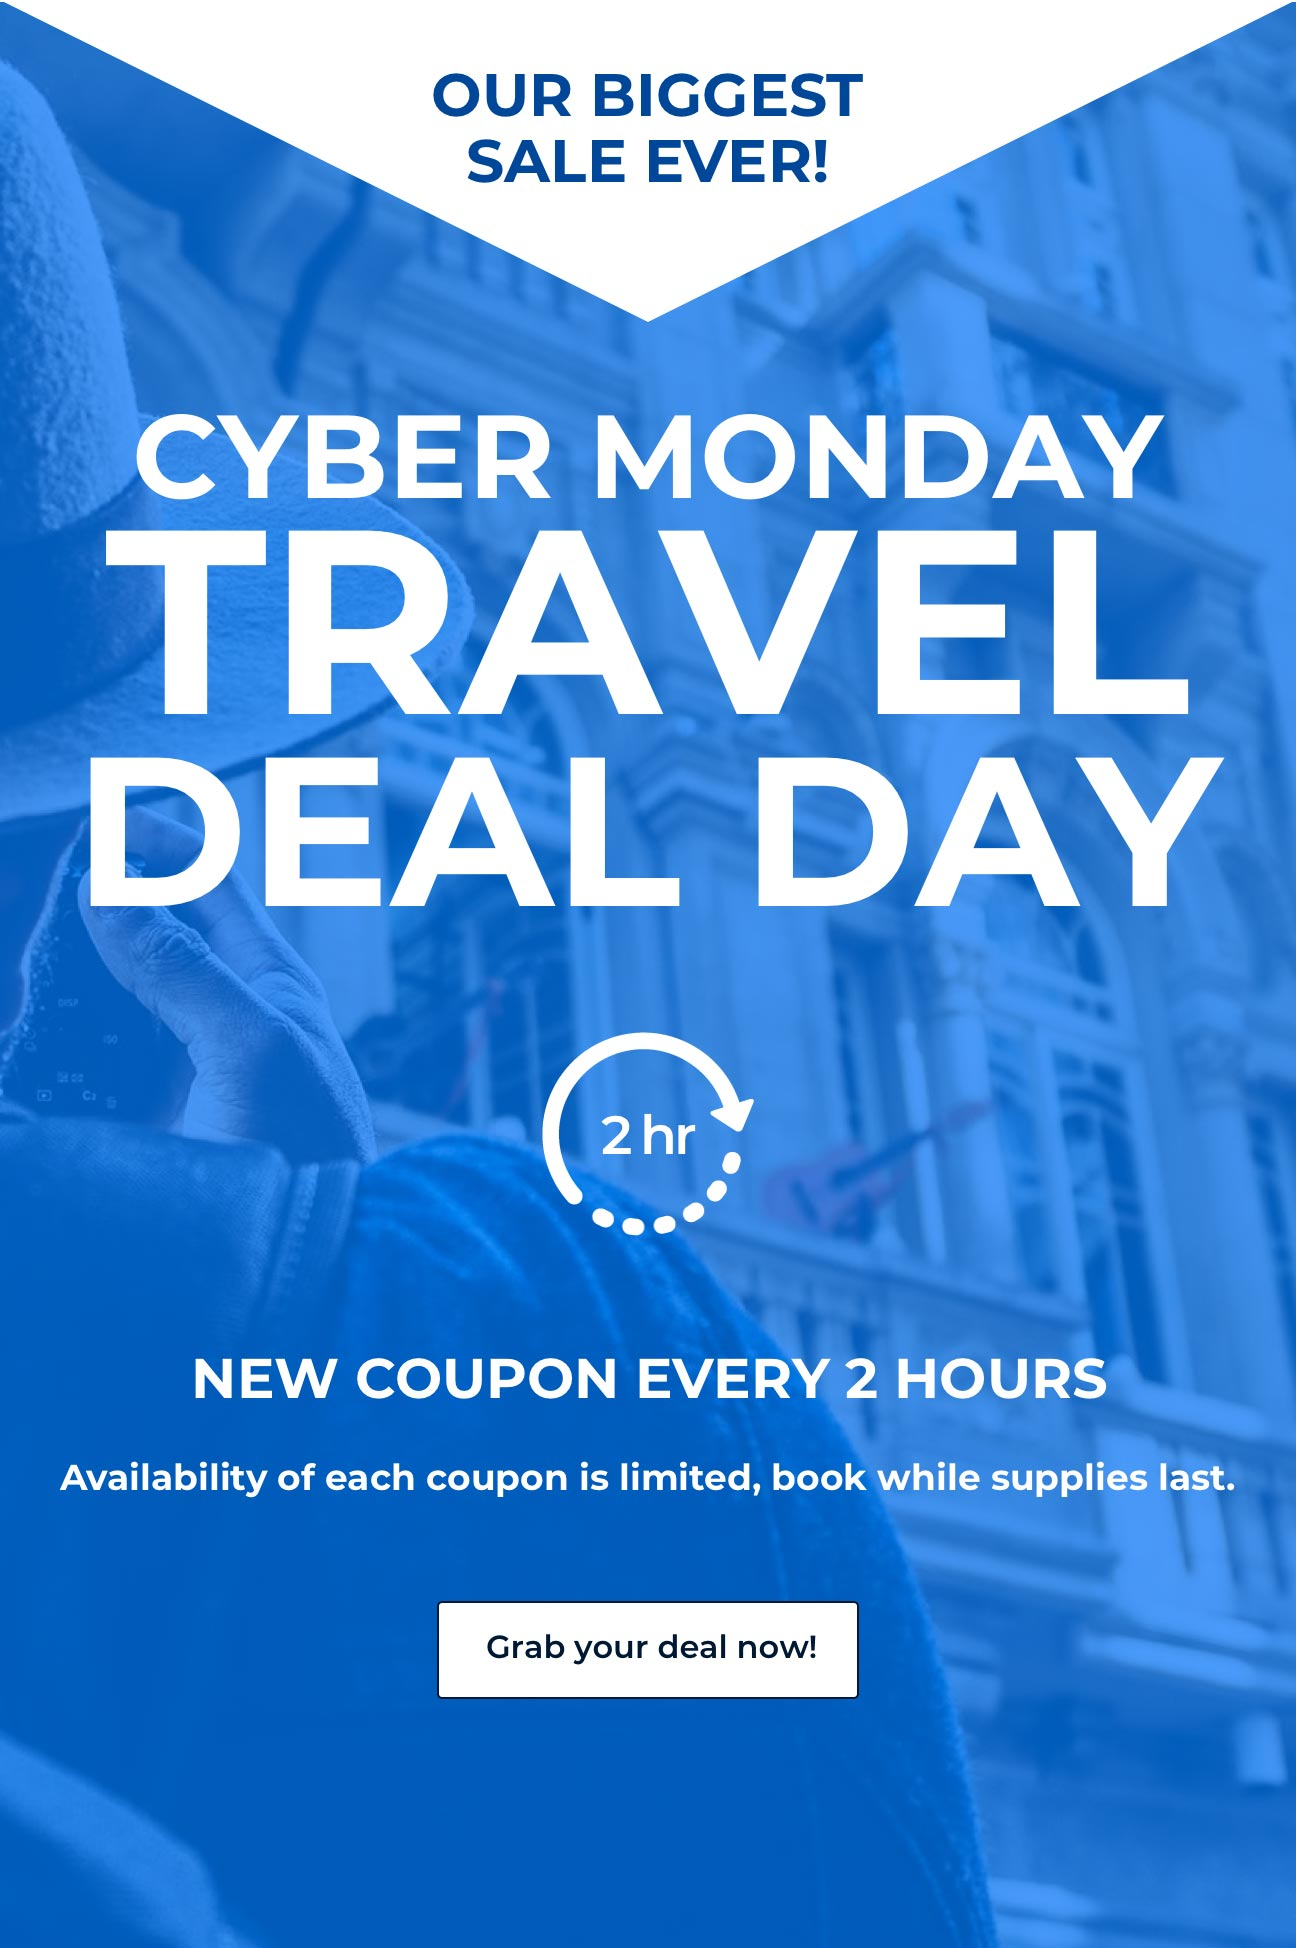 Priceline Cyber Monday Travel Deals New Sale Every 2 Hours Milled